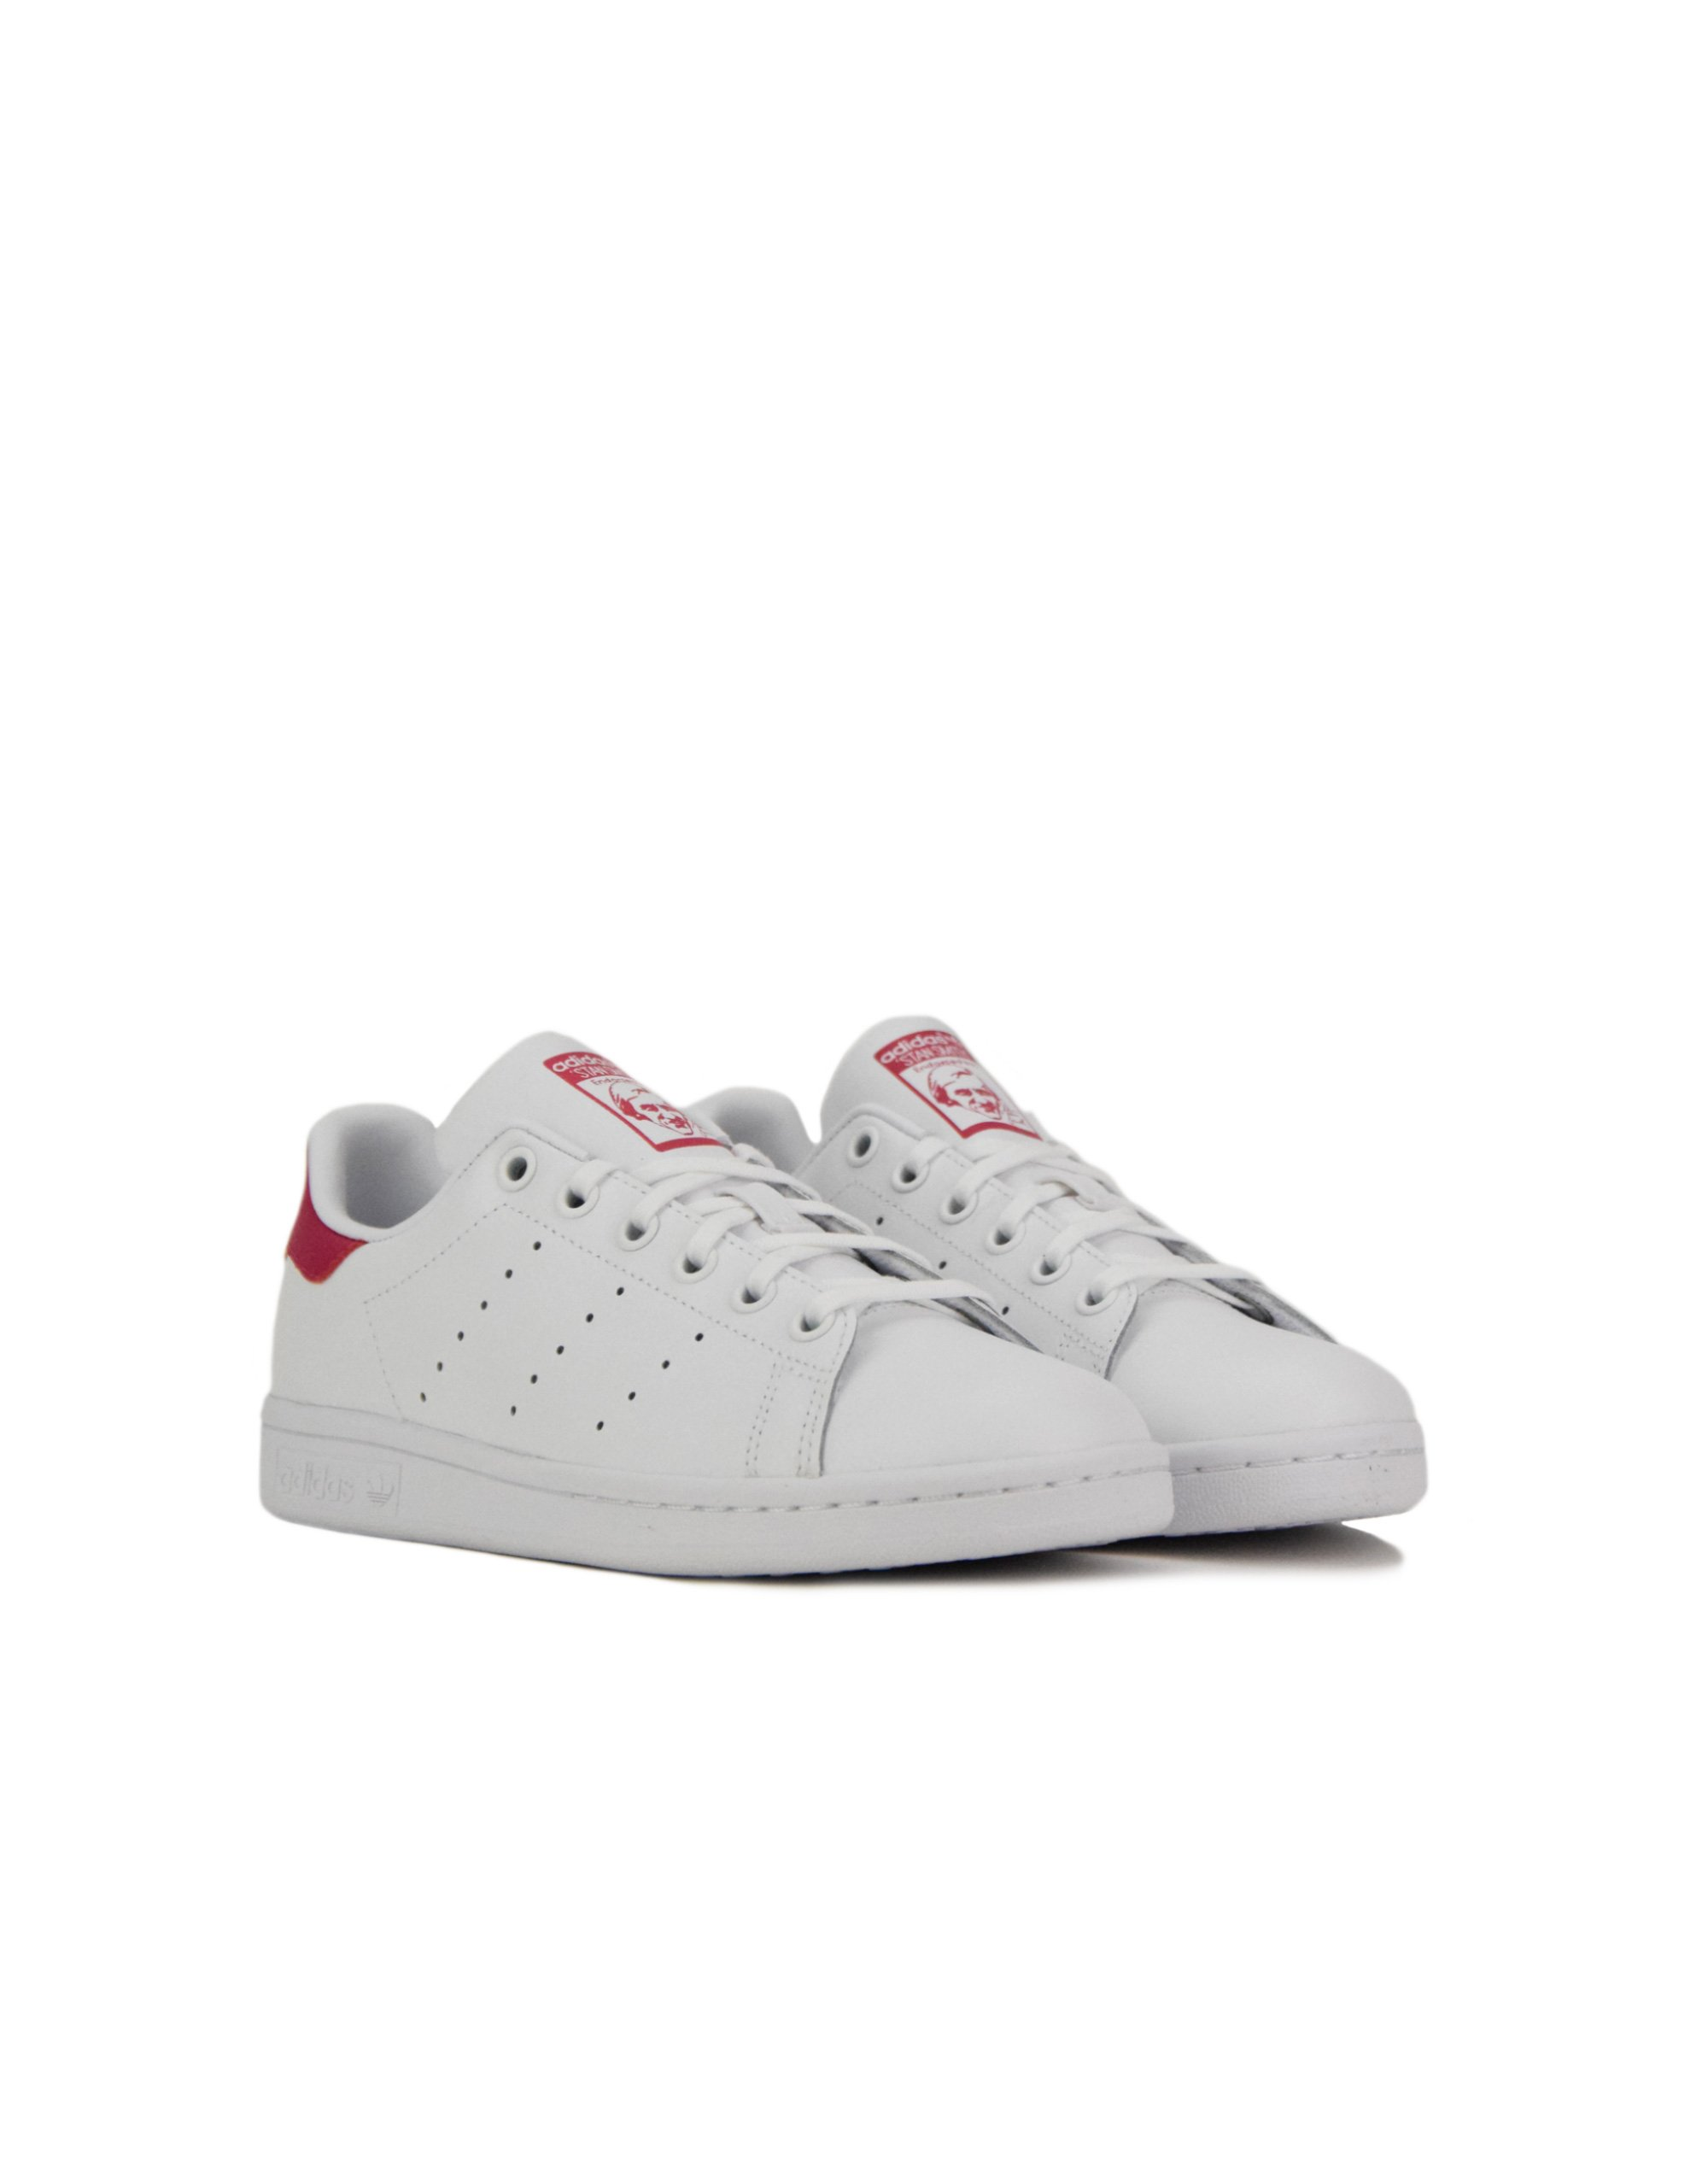 Adidas Stan Smith (B32703) White/Pink